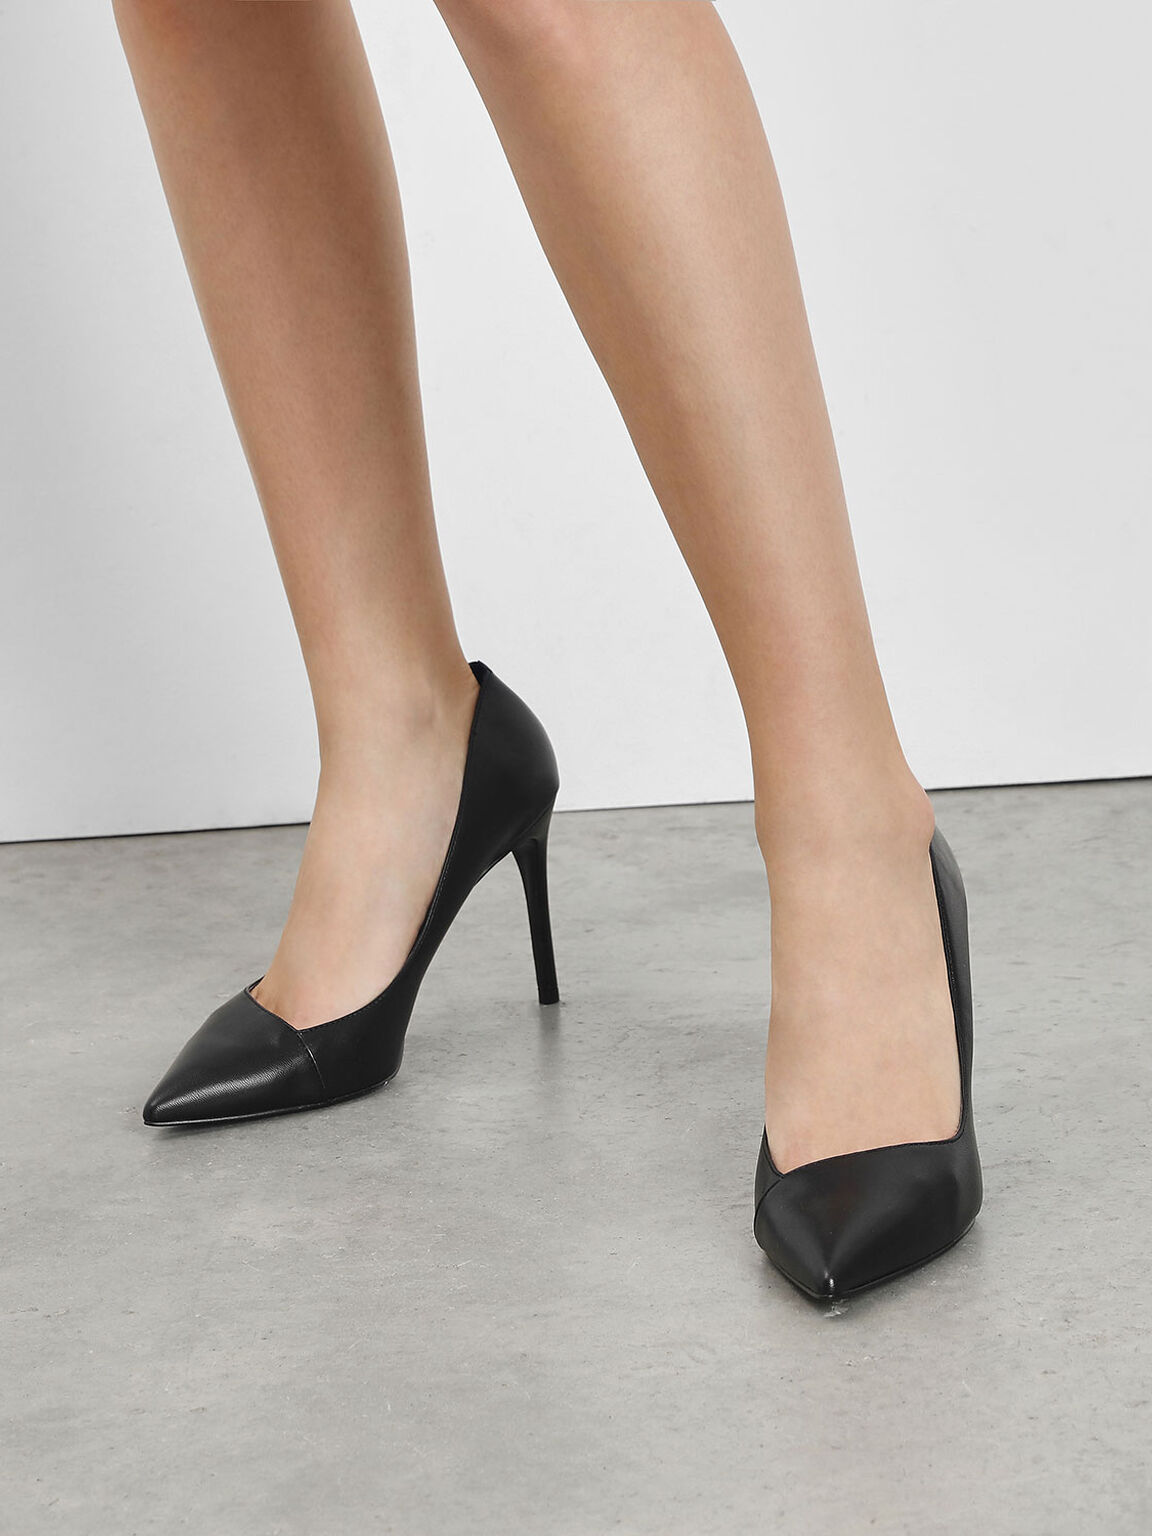 Asymmetrical Cut Stiletto Pumps, Black, hi-res